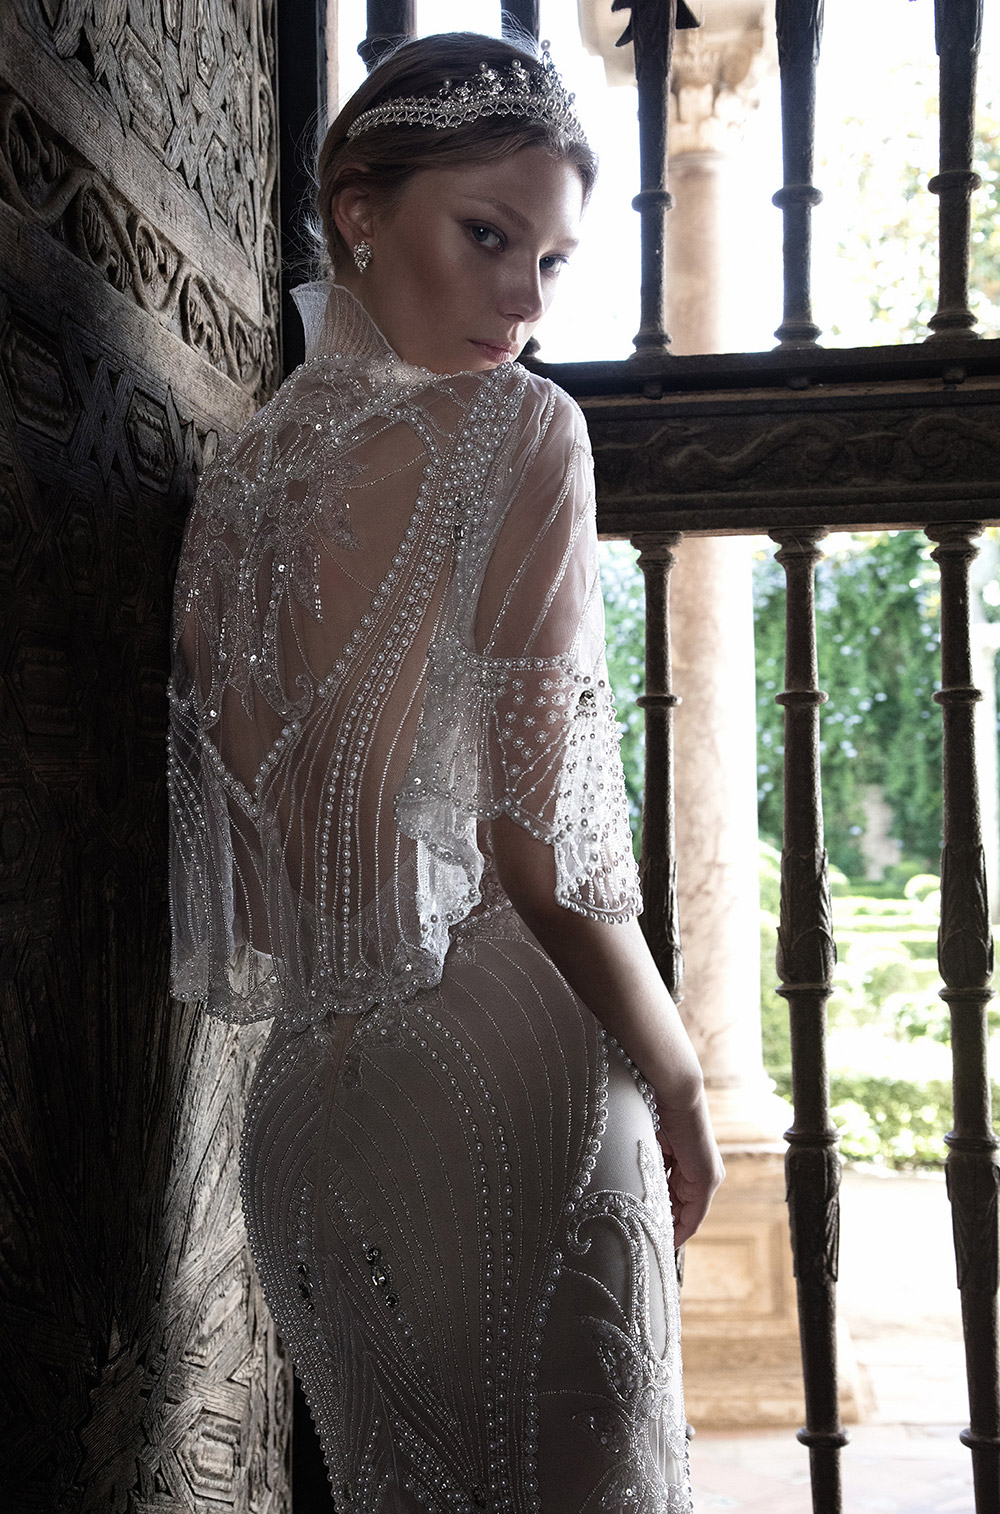 PEARL - Alon Livne 2017 Bridal Collection. www.theweddingnotebook.com